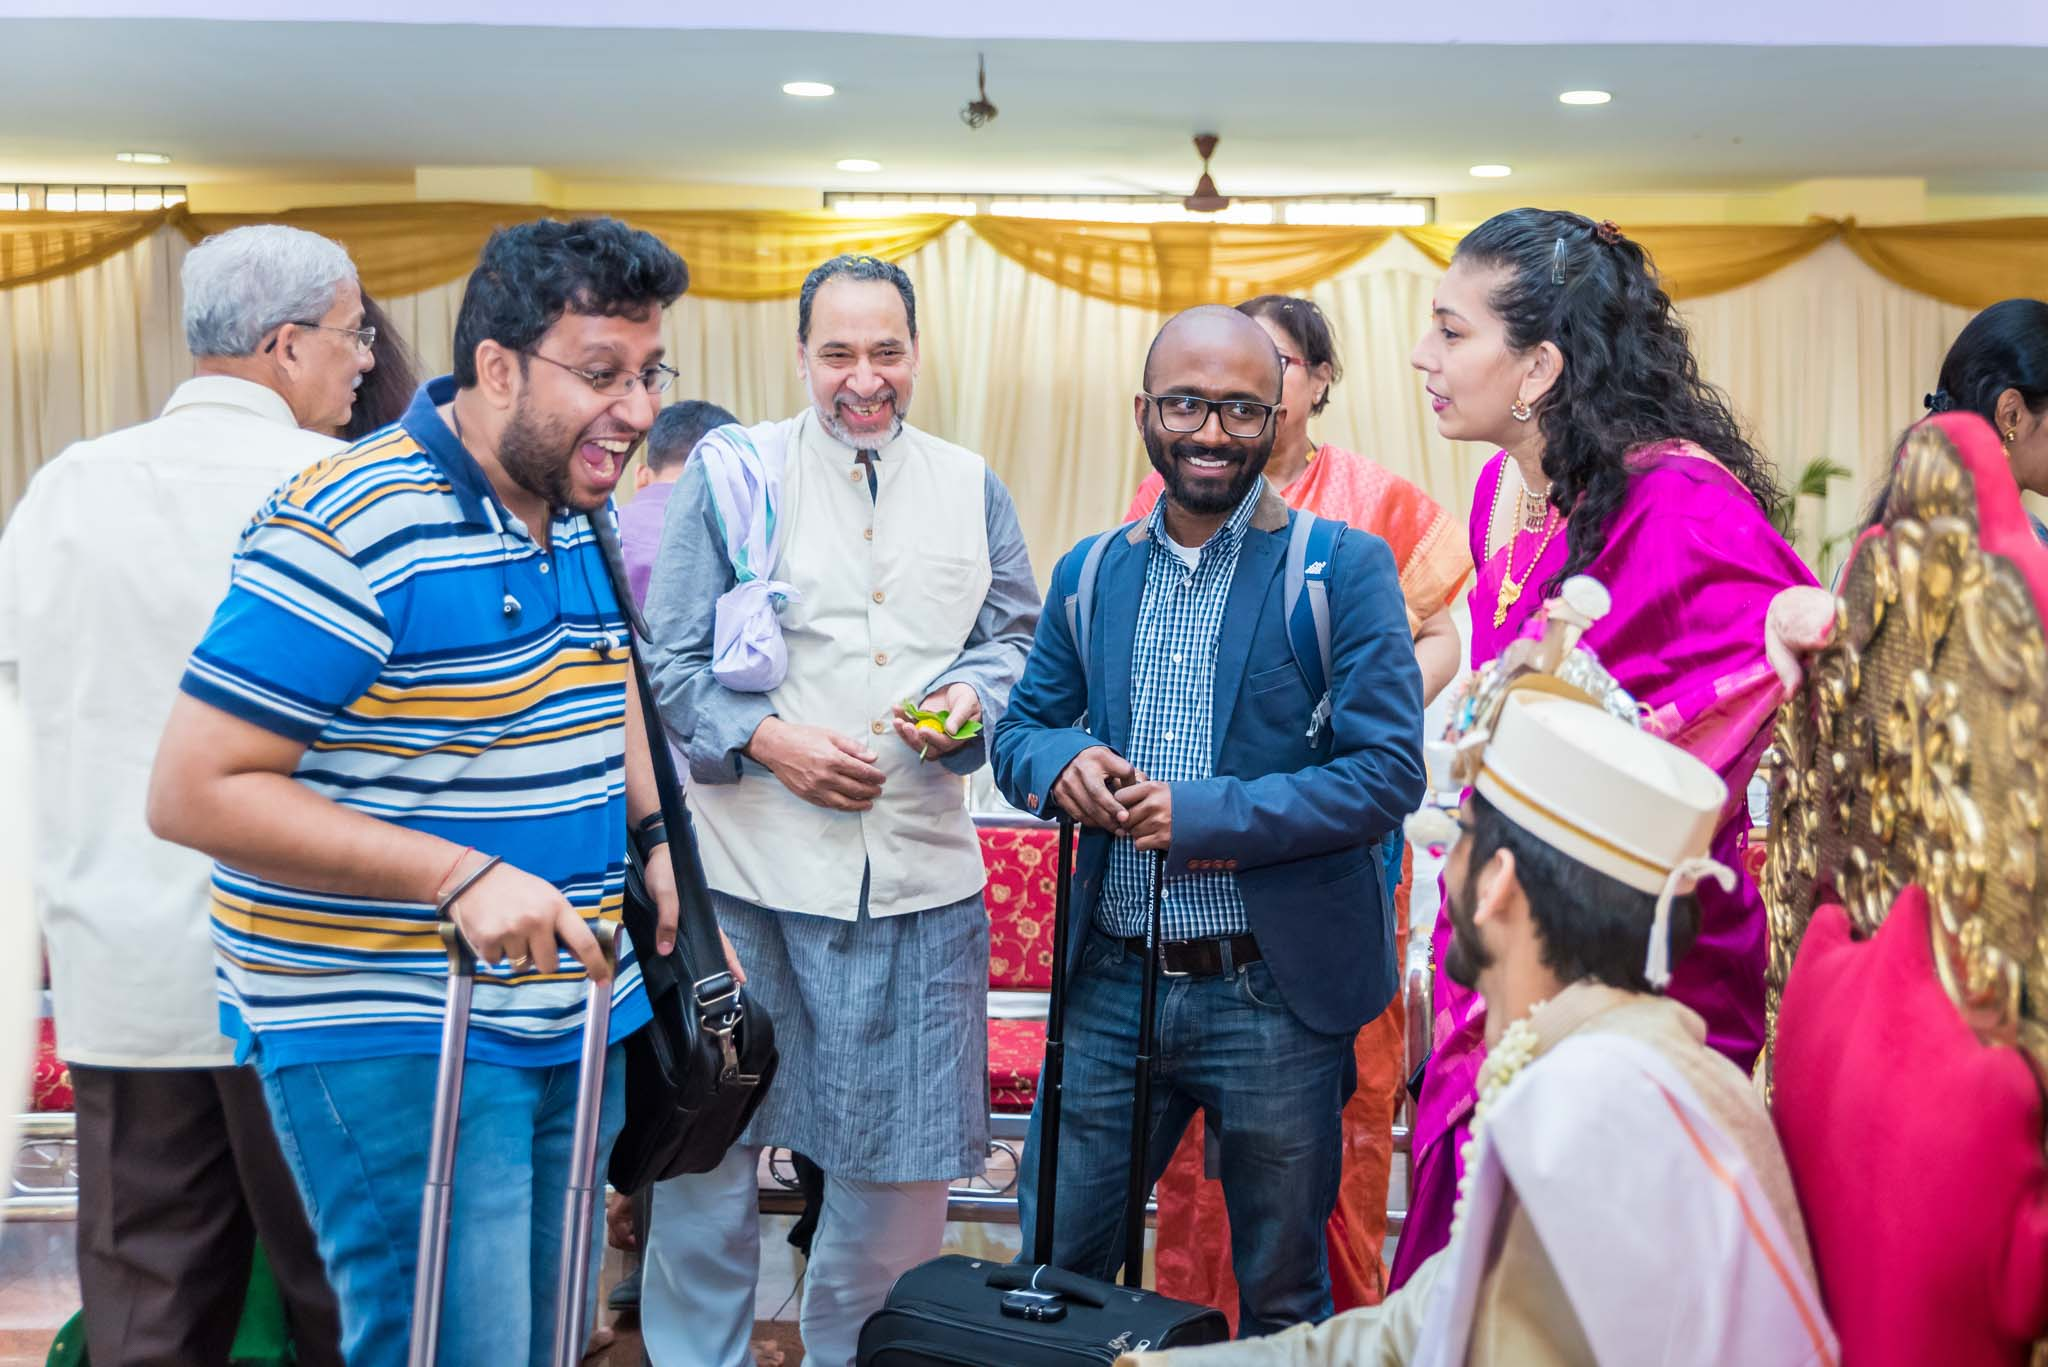 WhatKnot-Candid-Wedding-Photography-Mumbai-Bangalore-148